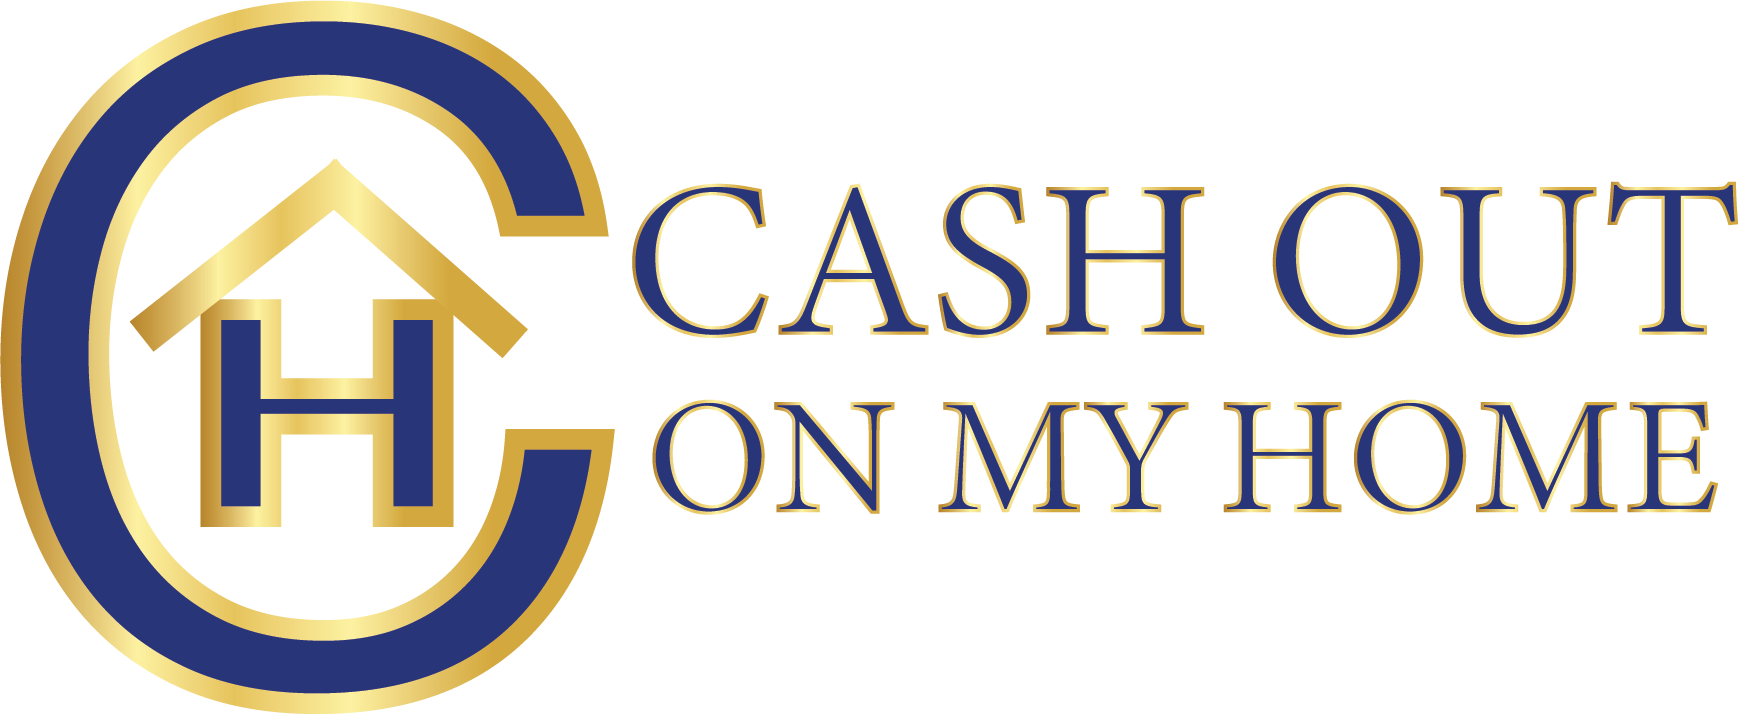 Cash Out On My Home logo